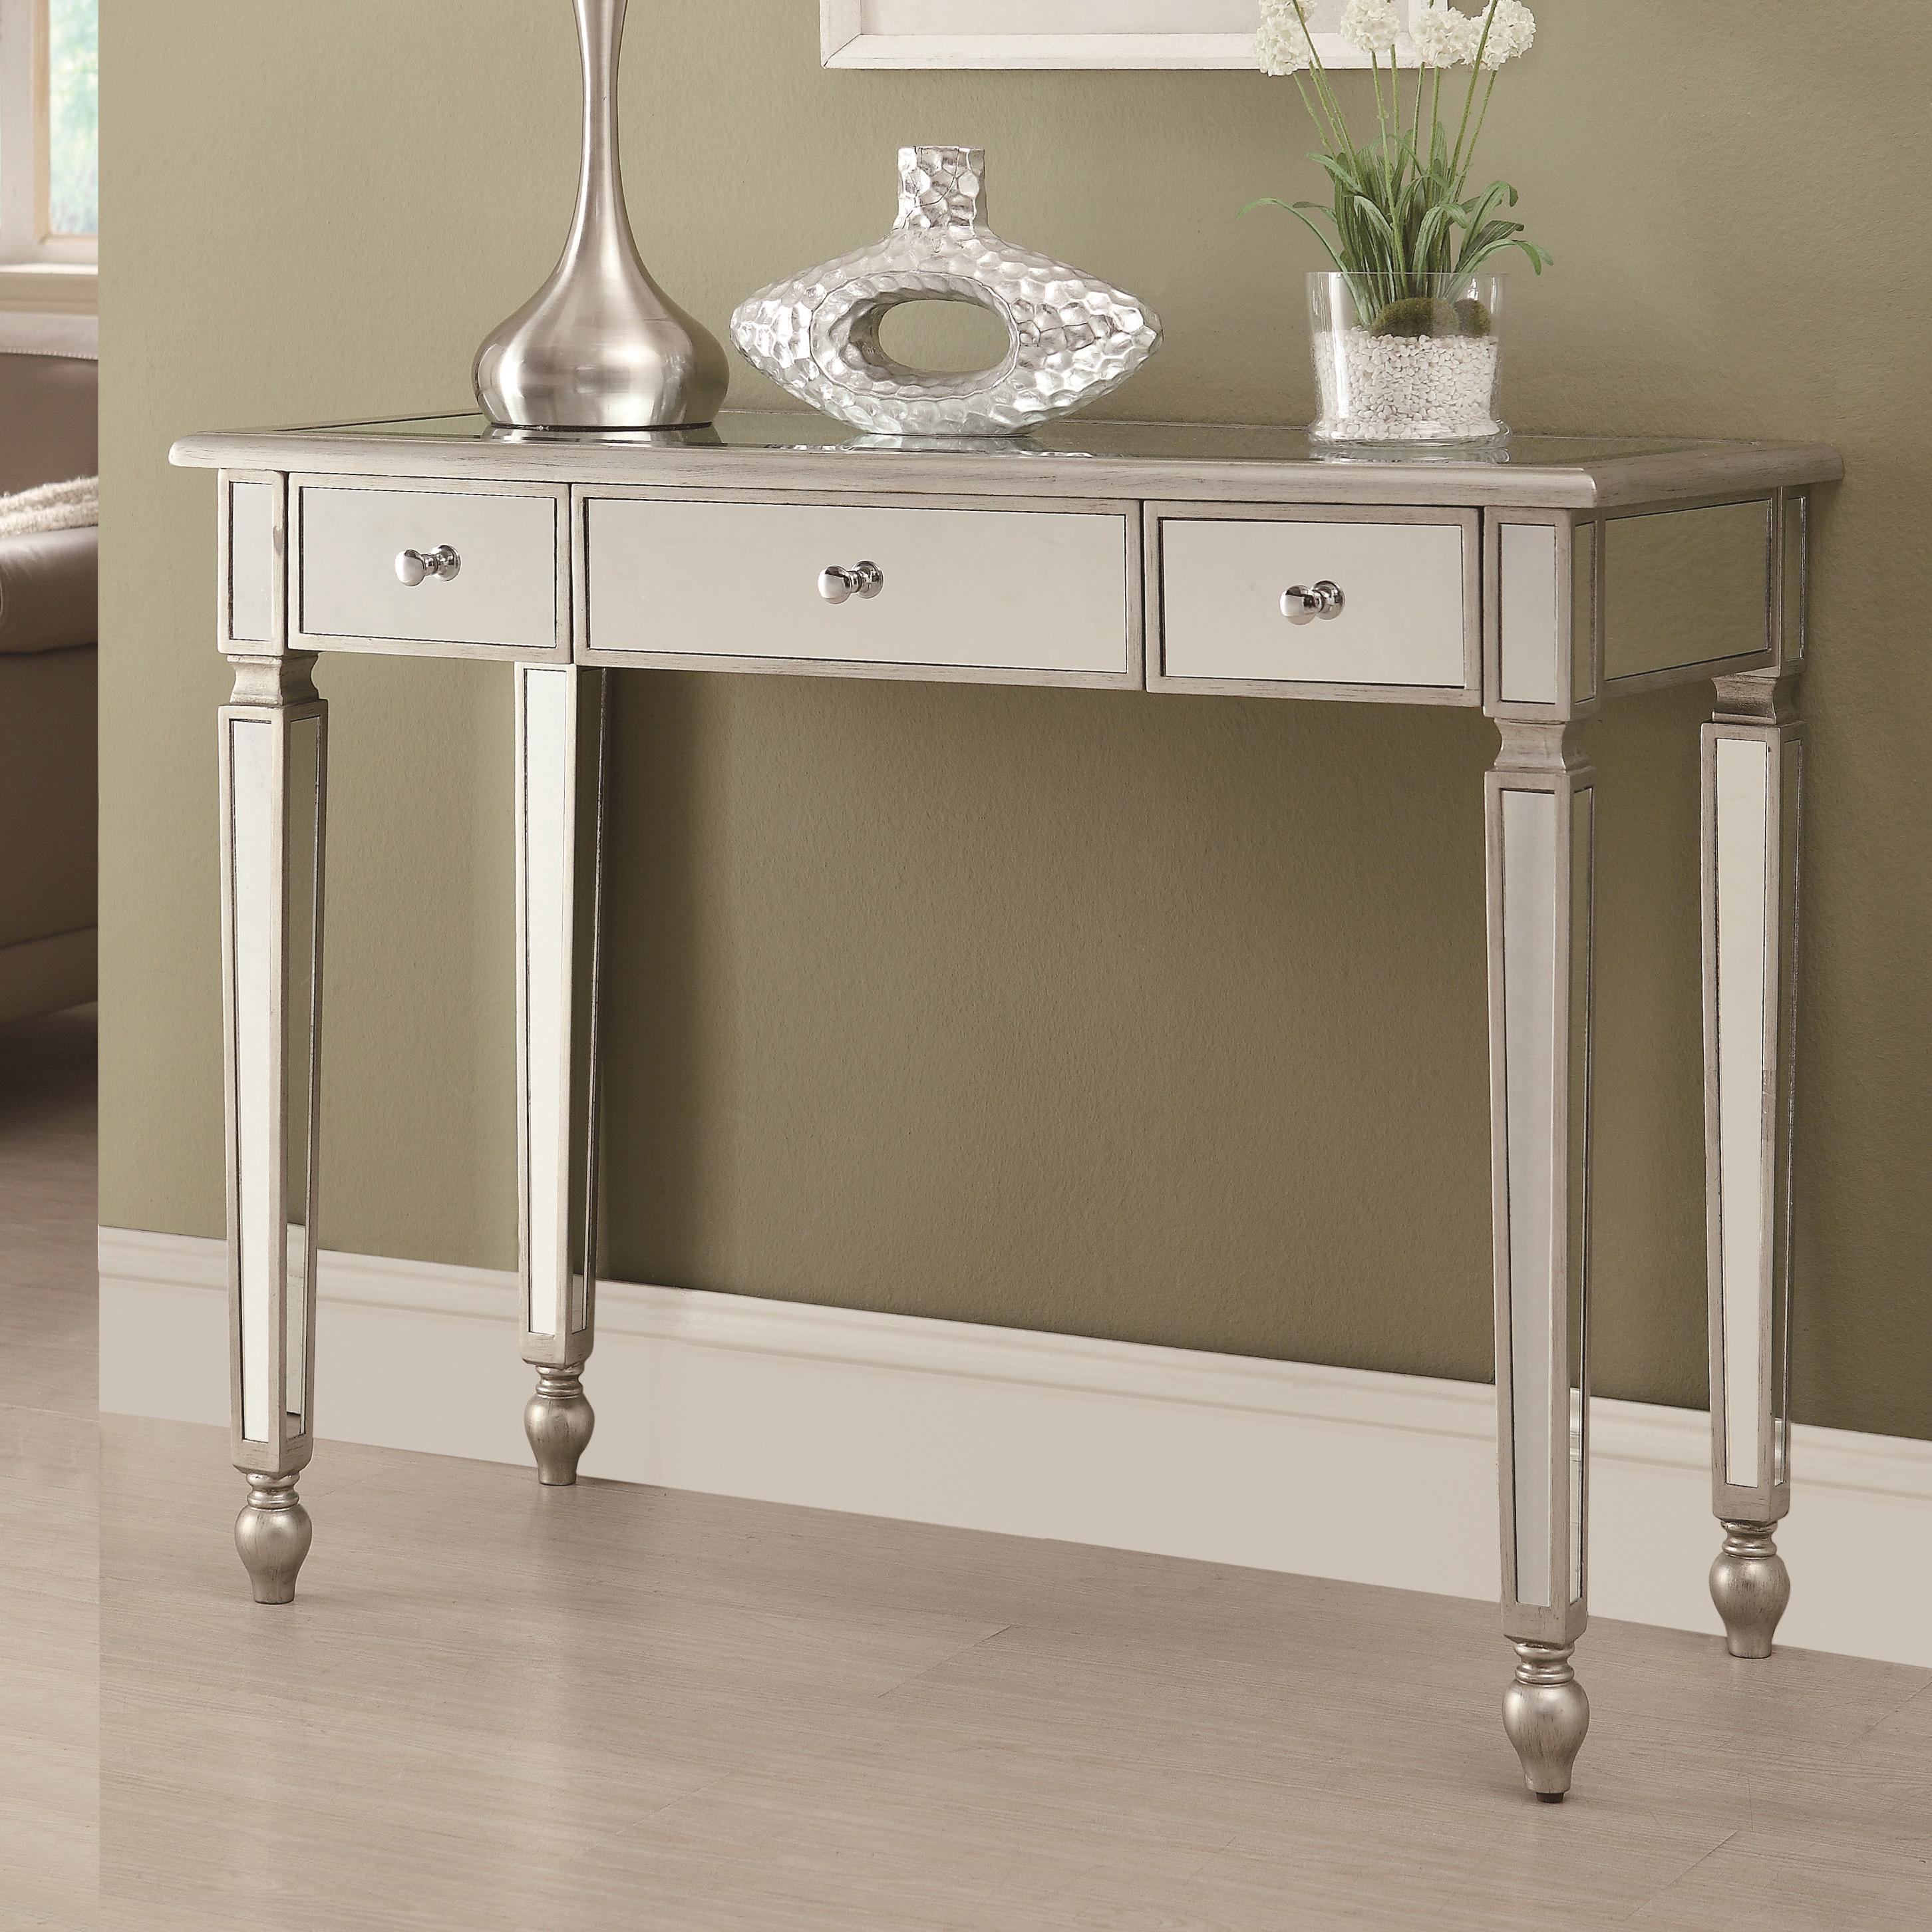 Coaster Accent Tables Console Table - Item Number: 950014